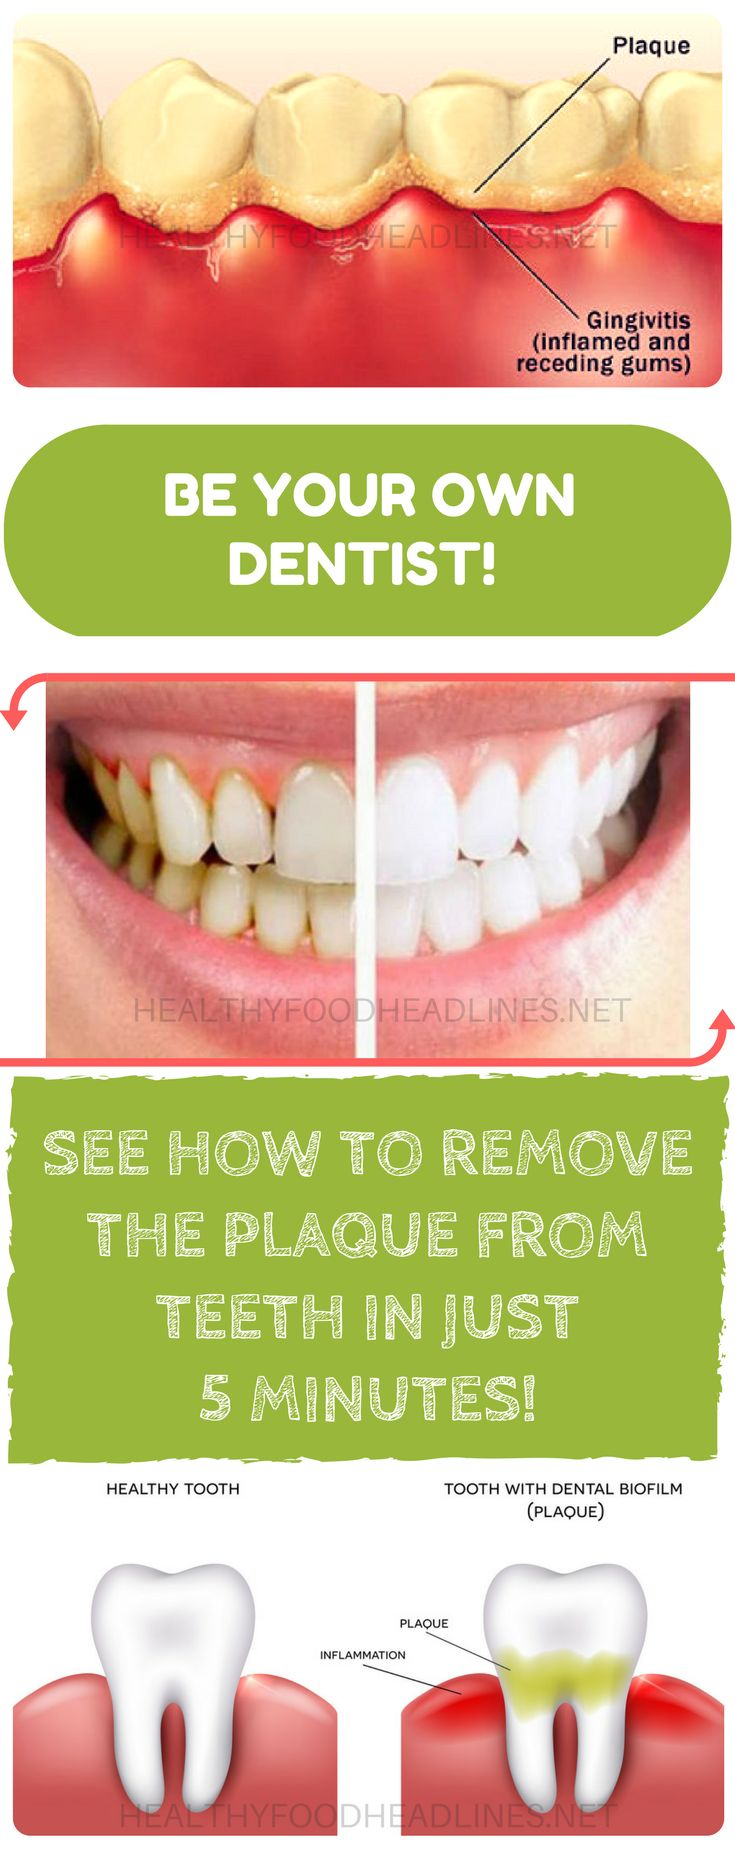 BE-YOUR-OWN-DENTIST-SEE-HOW-TO-REMOVE-THE-PLAQUE-FROM-TEETH-IN-JUST-5-MINUTES (1)